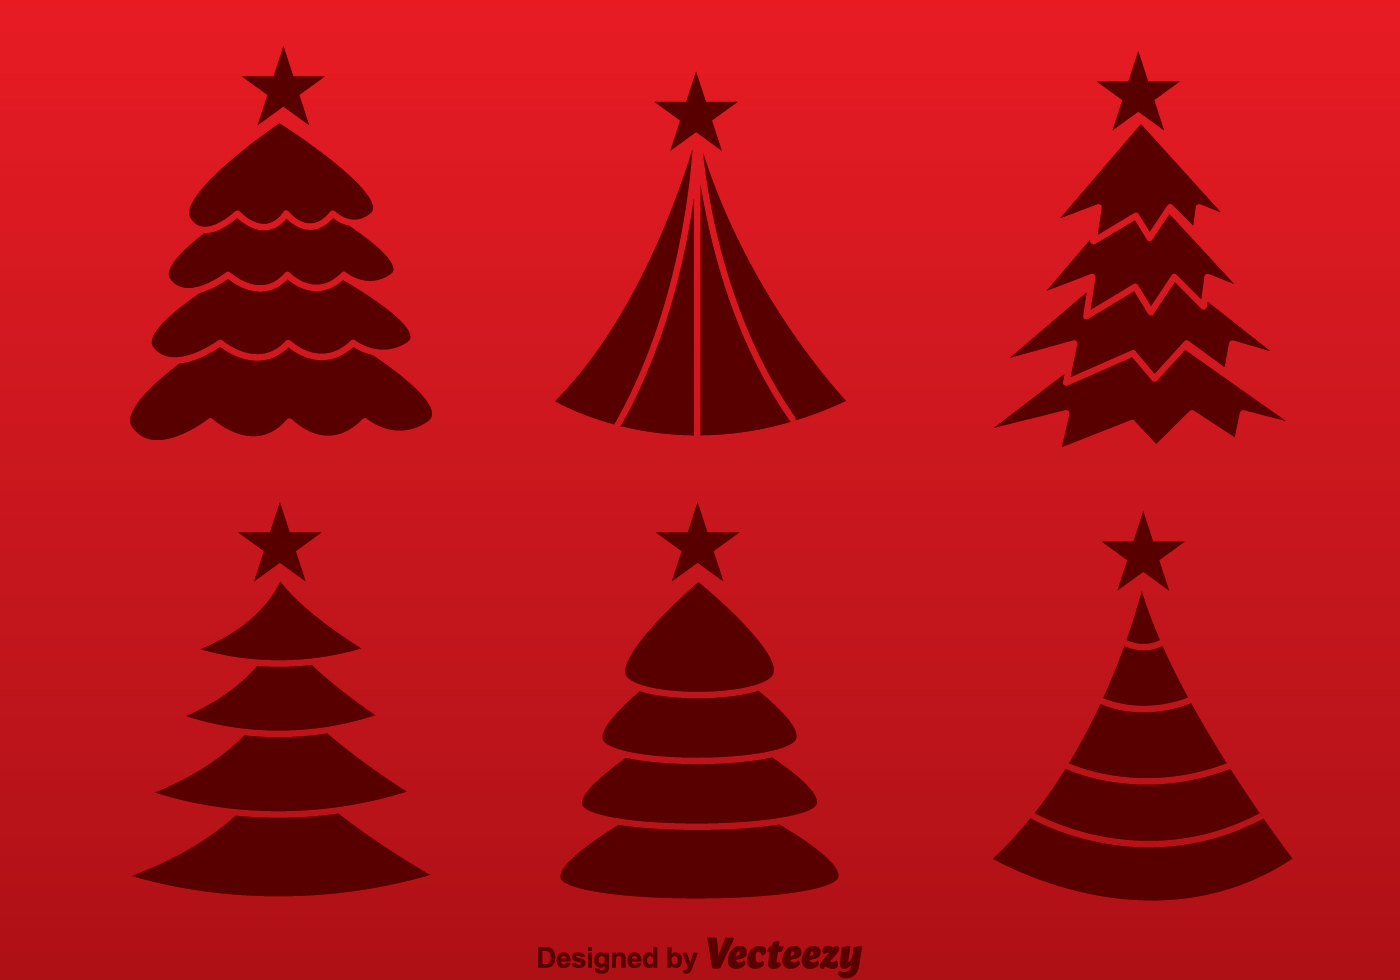 Bare Christmas Tree Clipart.Free Christmas Tree Clipart Red Silhouette 252px Image 8